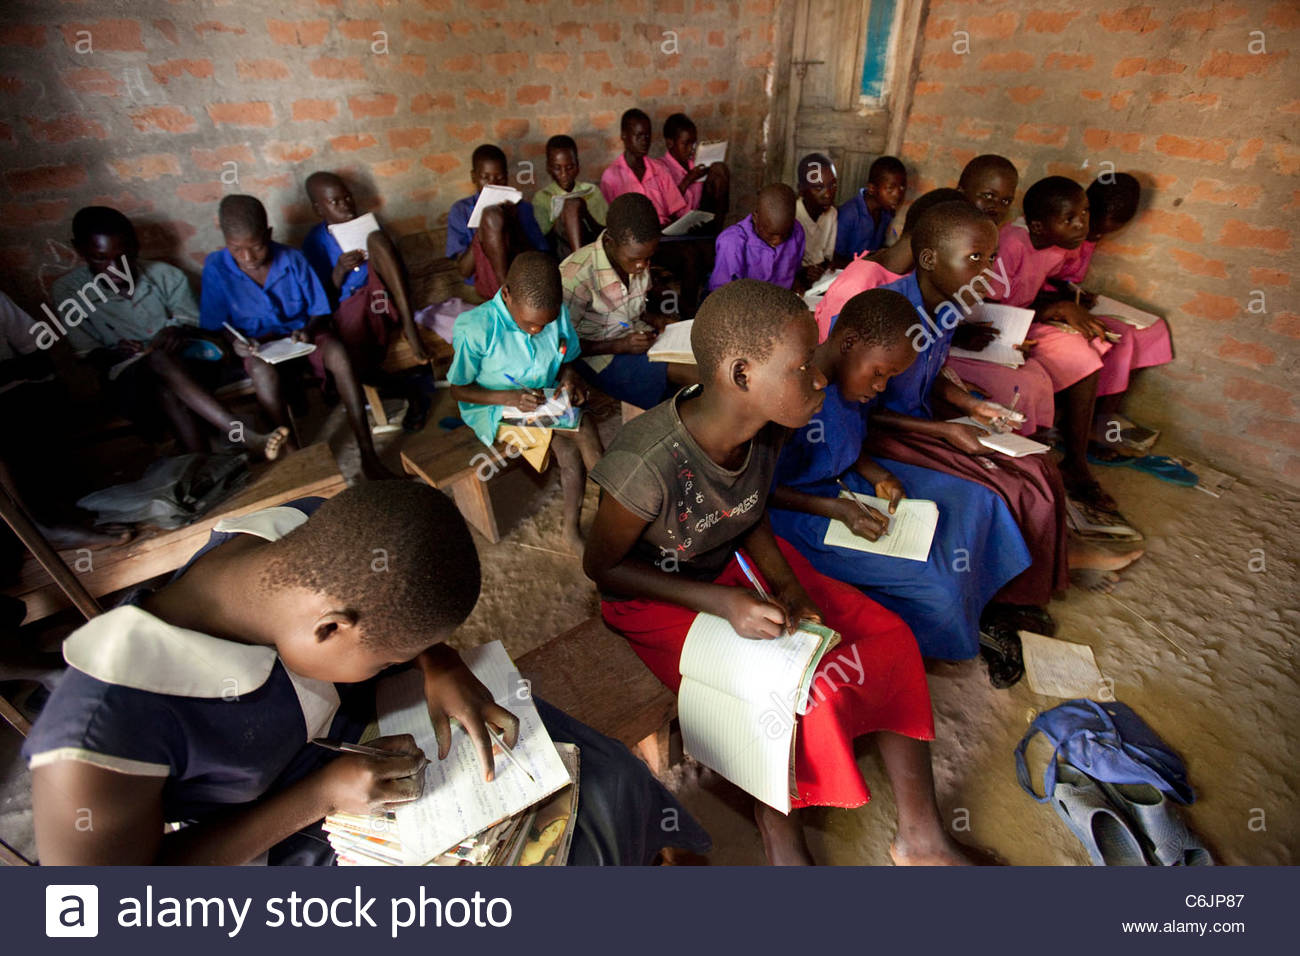 Elementary Classrooms Without Desks ~ Primary school children learning in a dark classroom